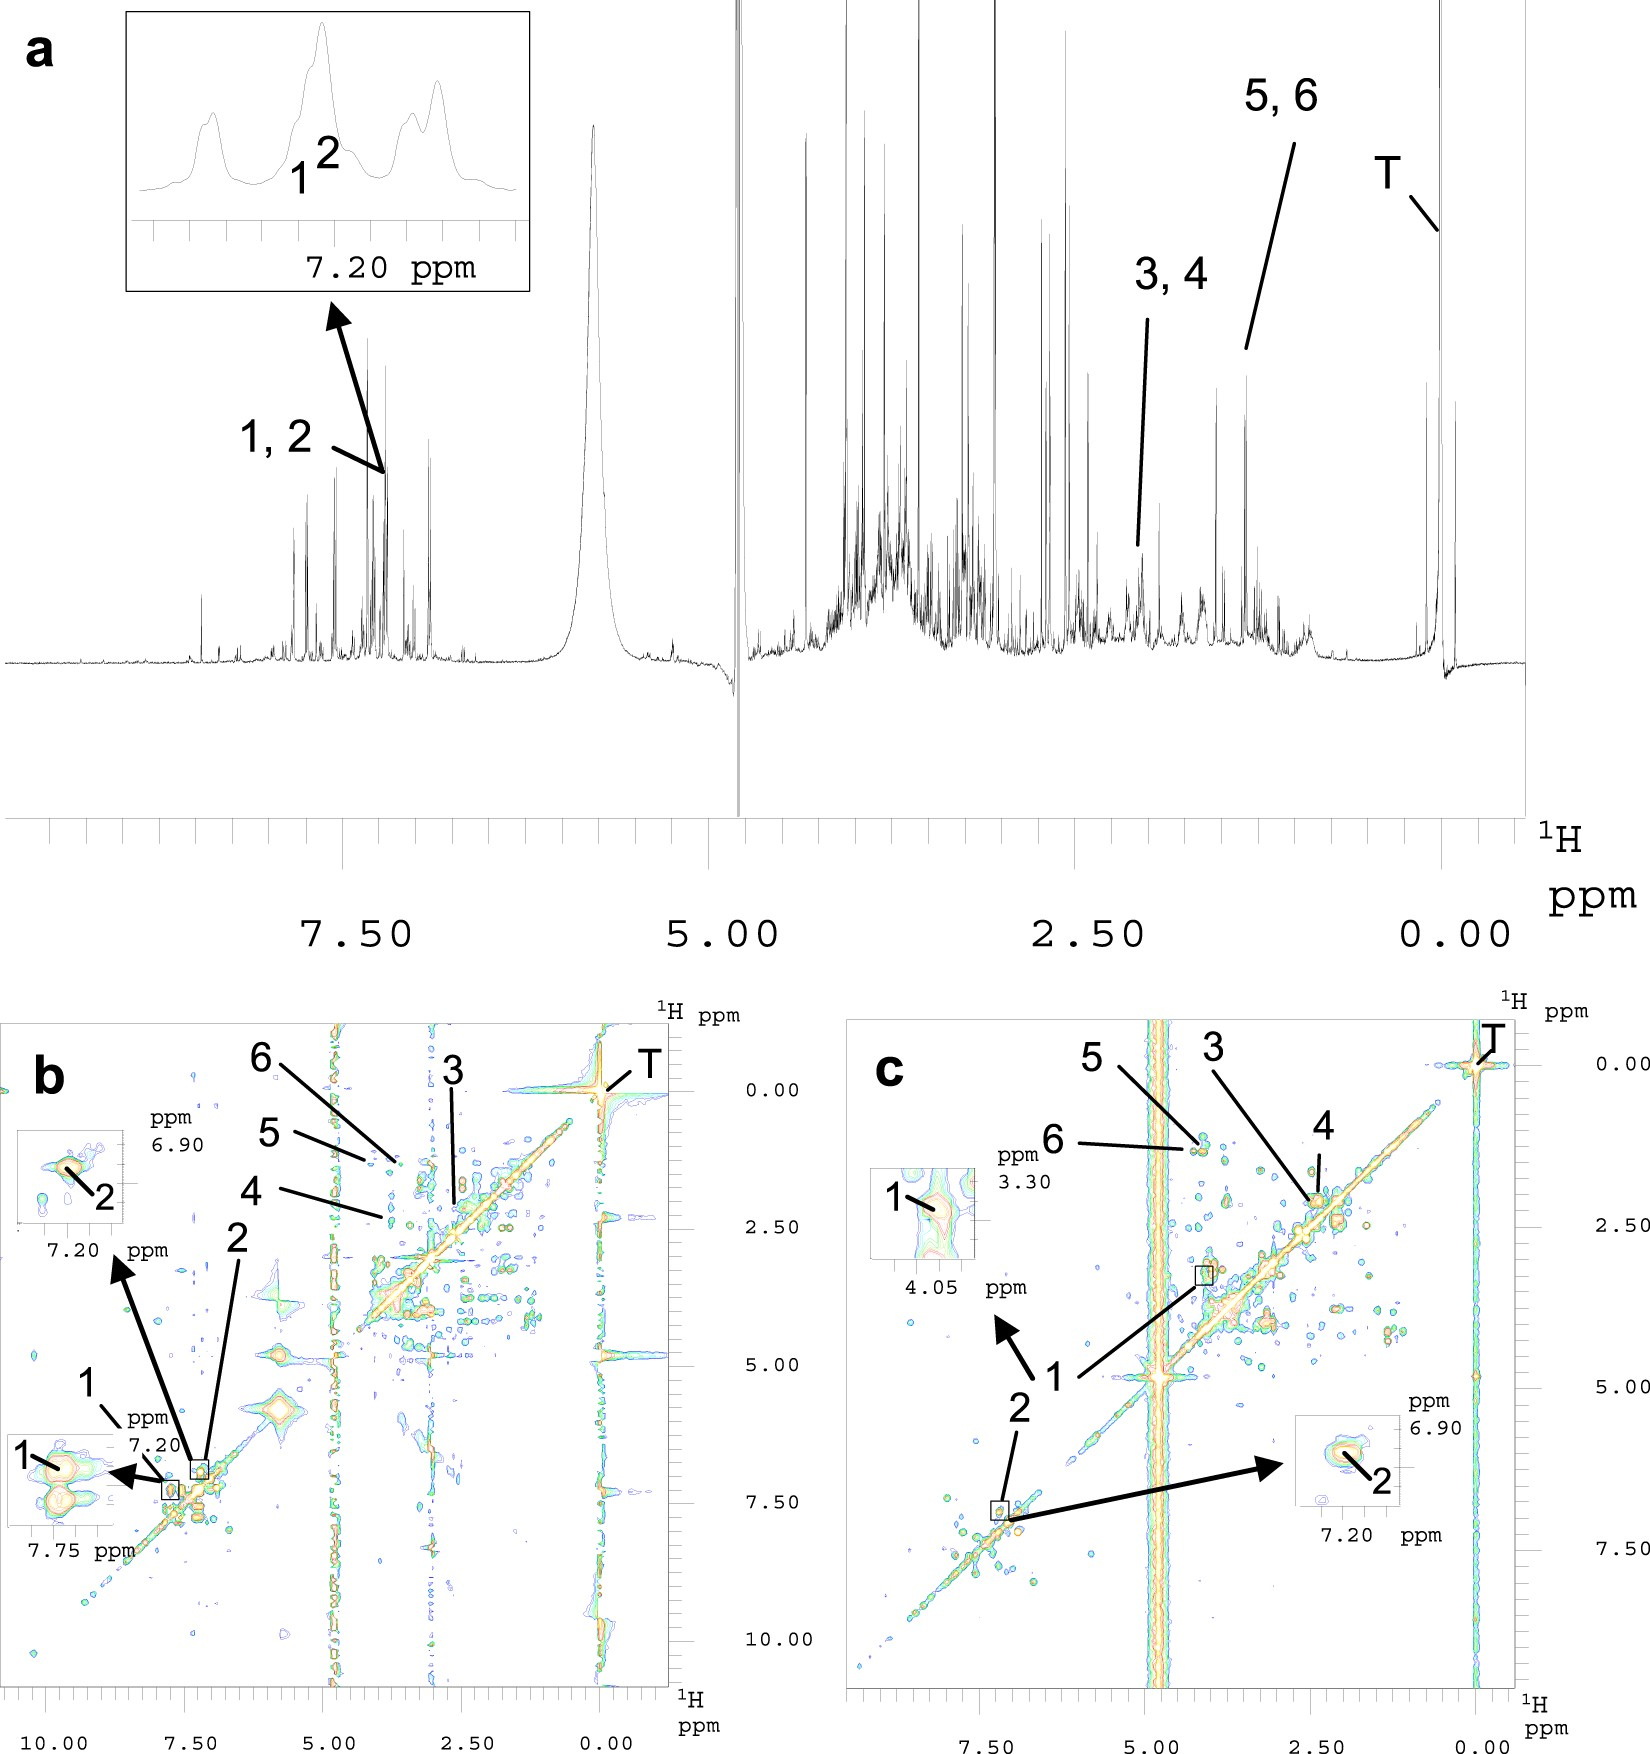 Systematic Evaluation of Non-Uniform Sampling Parameters in